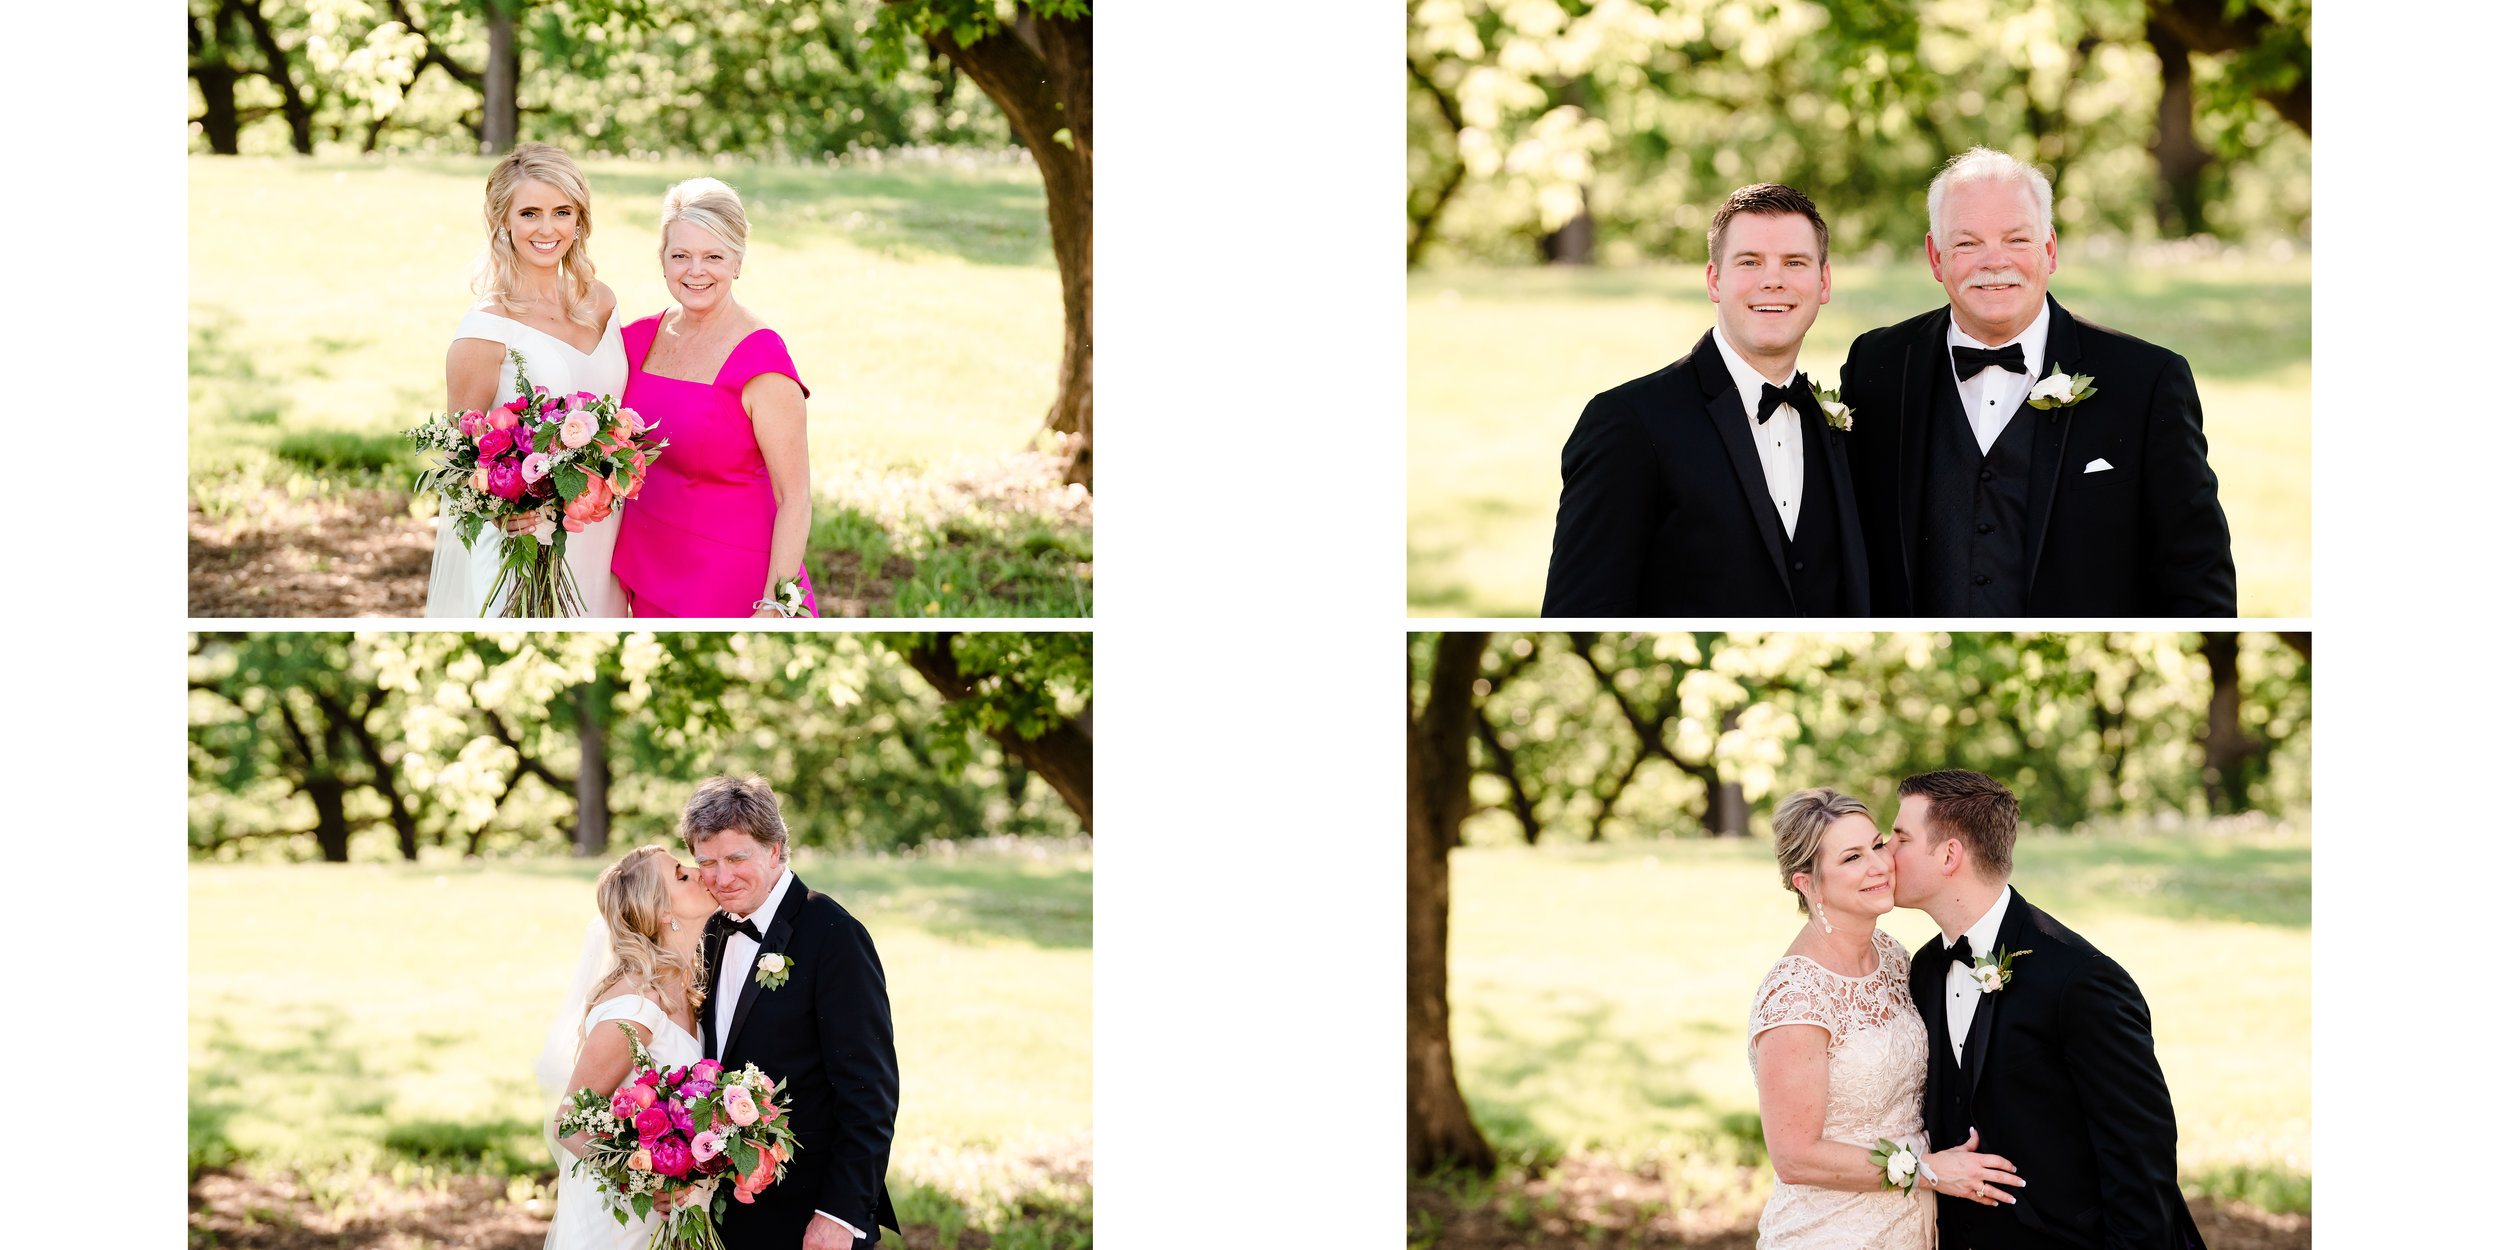 Amanda + Justin - Wedding Album_20.jpg